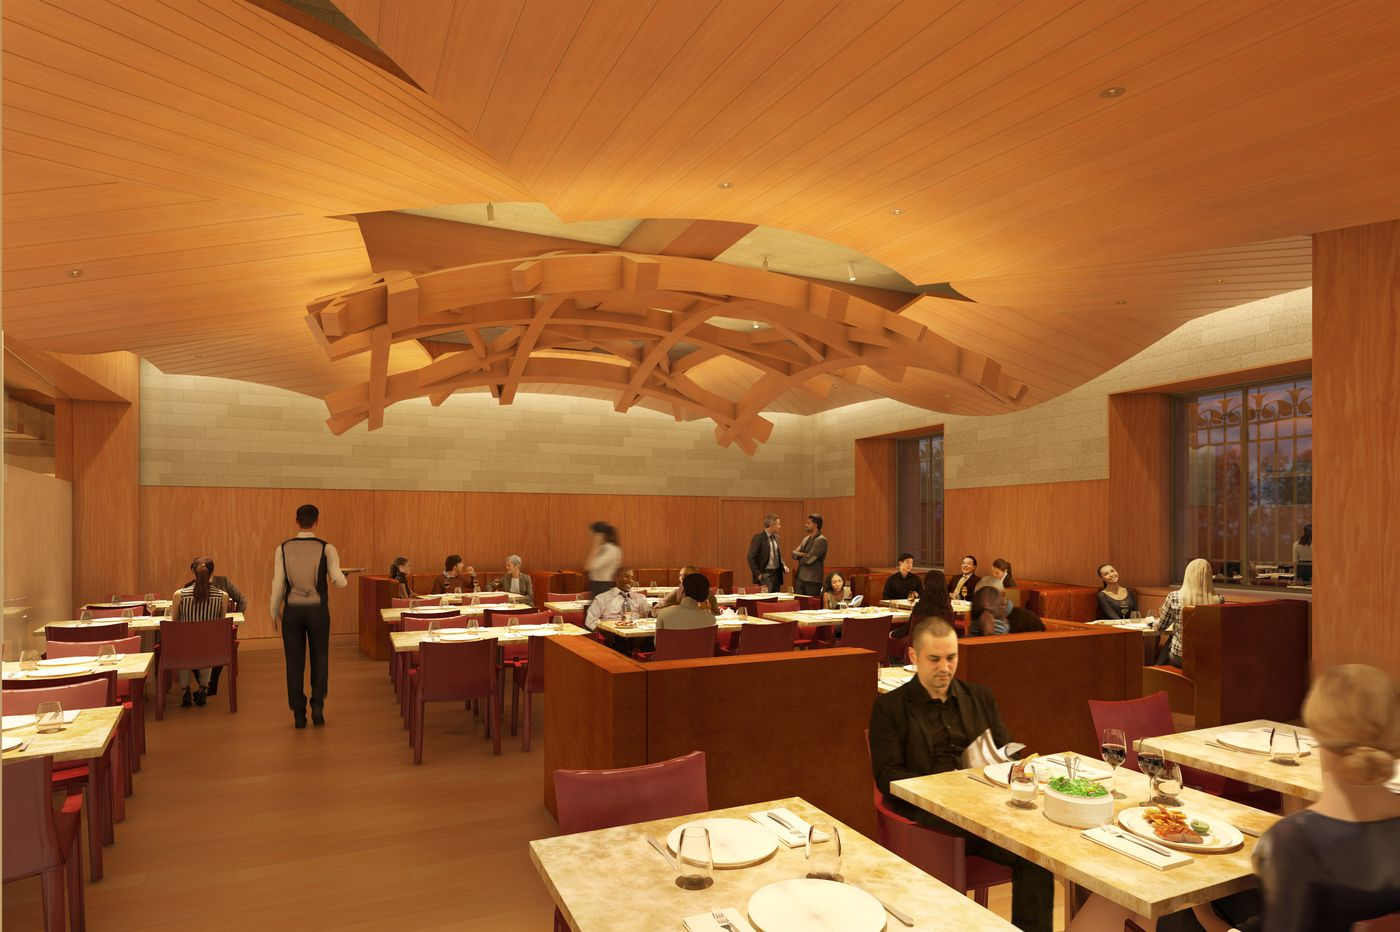 Architect Frank Gehry to design Art Museum restaurant